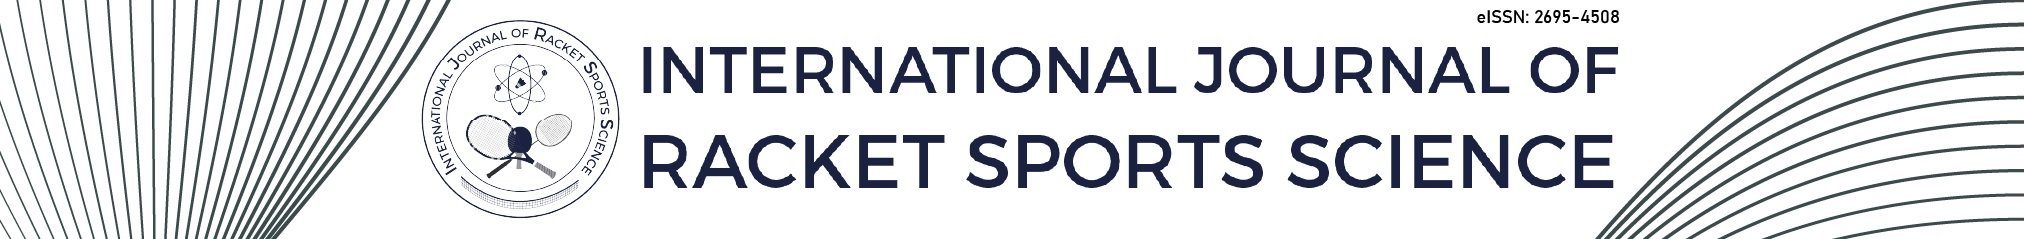 International Journal of Racket Sports Science